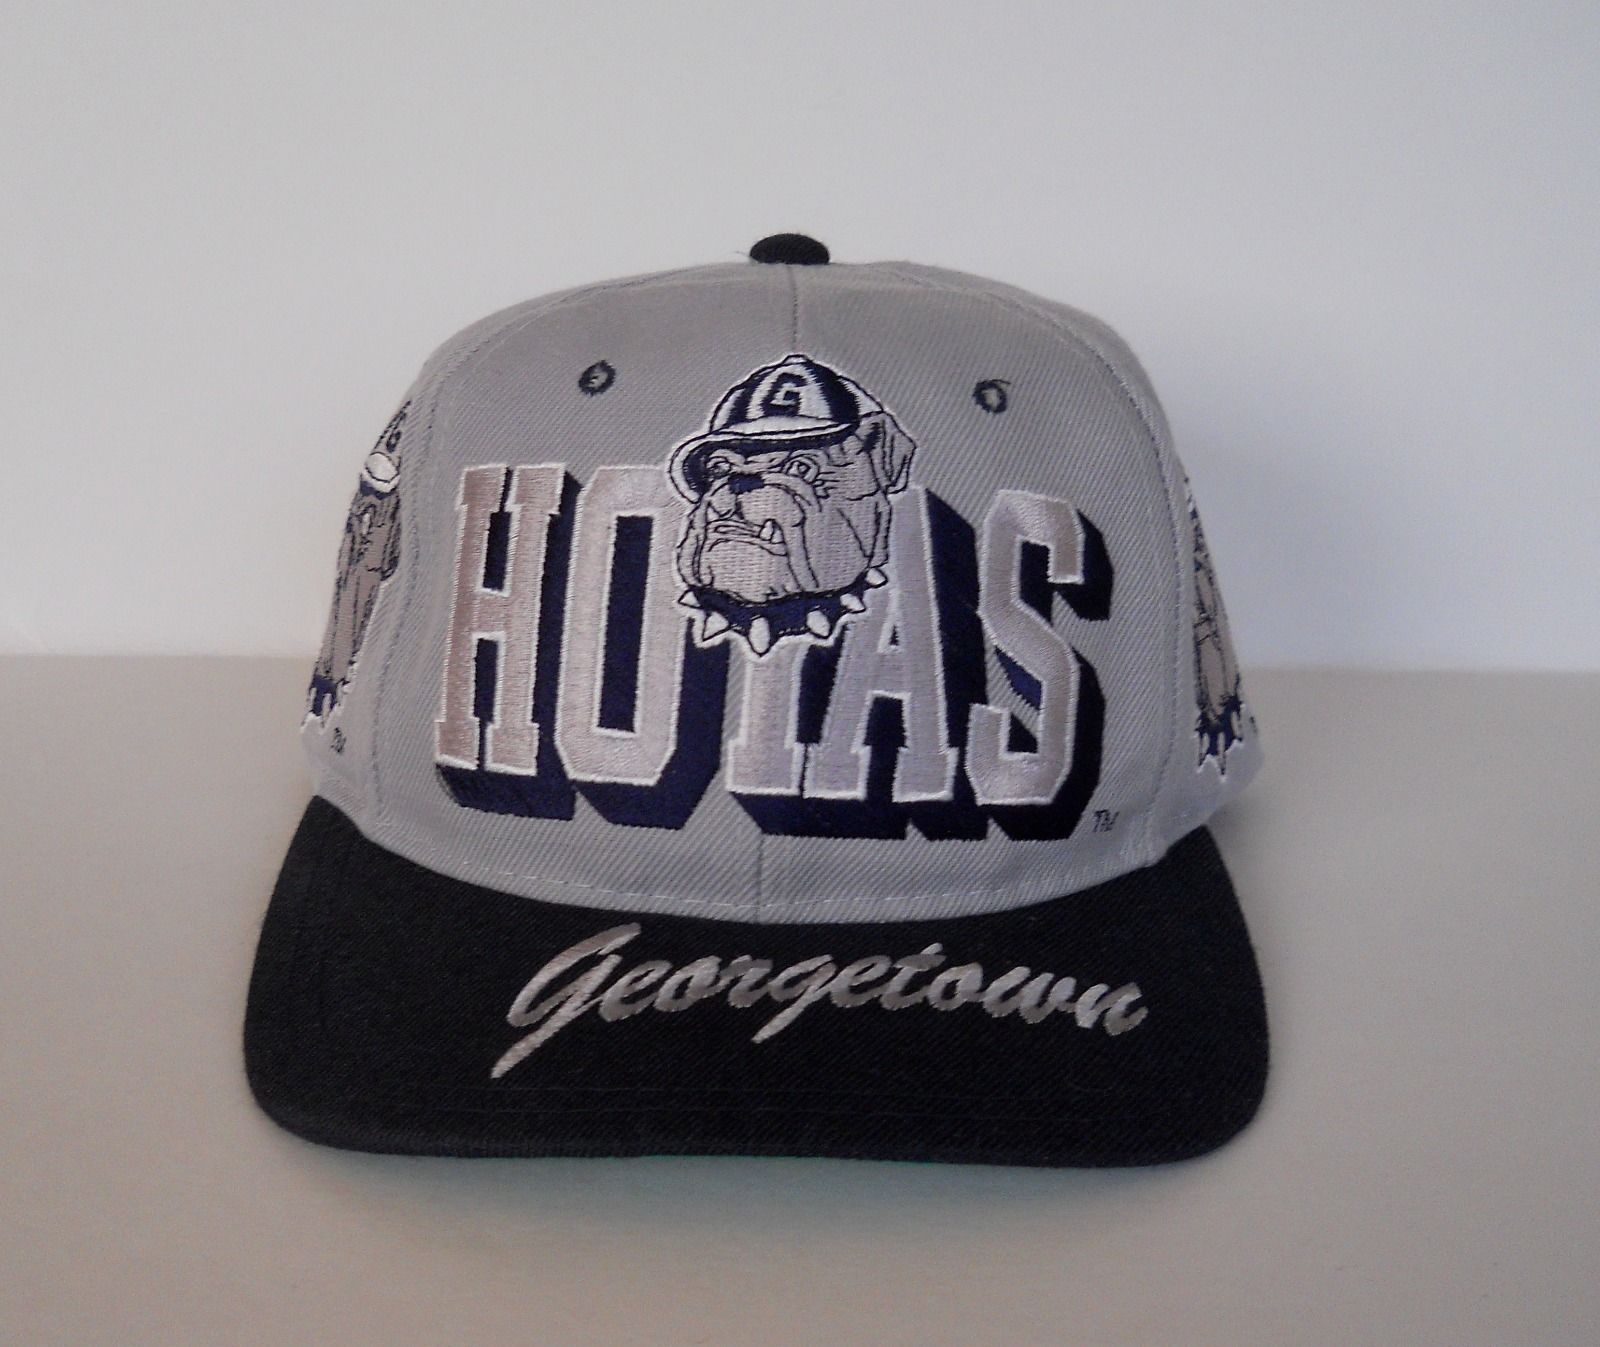 finest selection d062a 1e33d Georgetown Hoyas Vintage 90s Snapback Hat NCAA Script Big Logo Cap Top Star    eBay